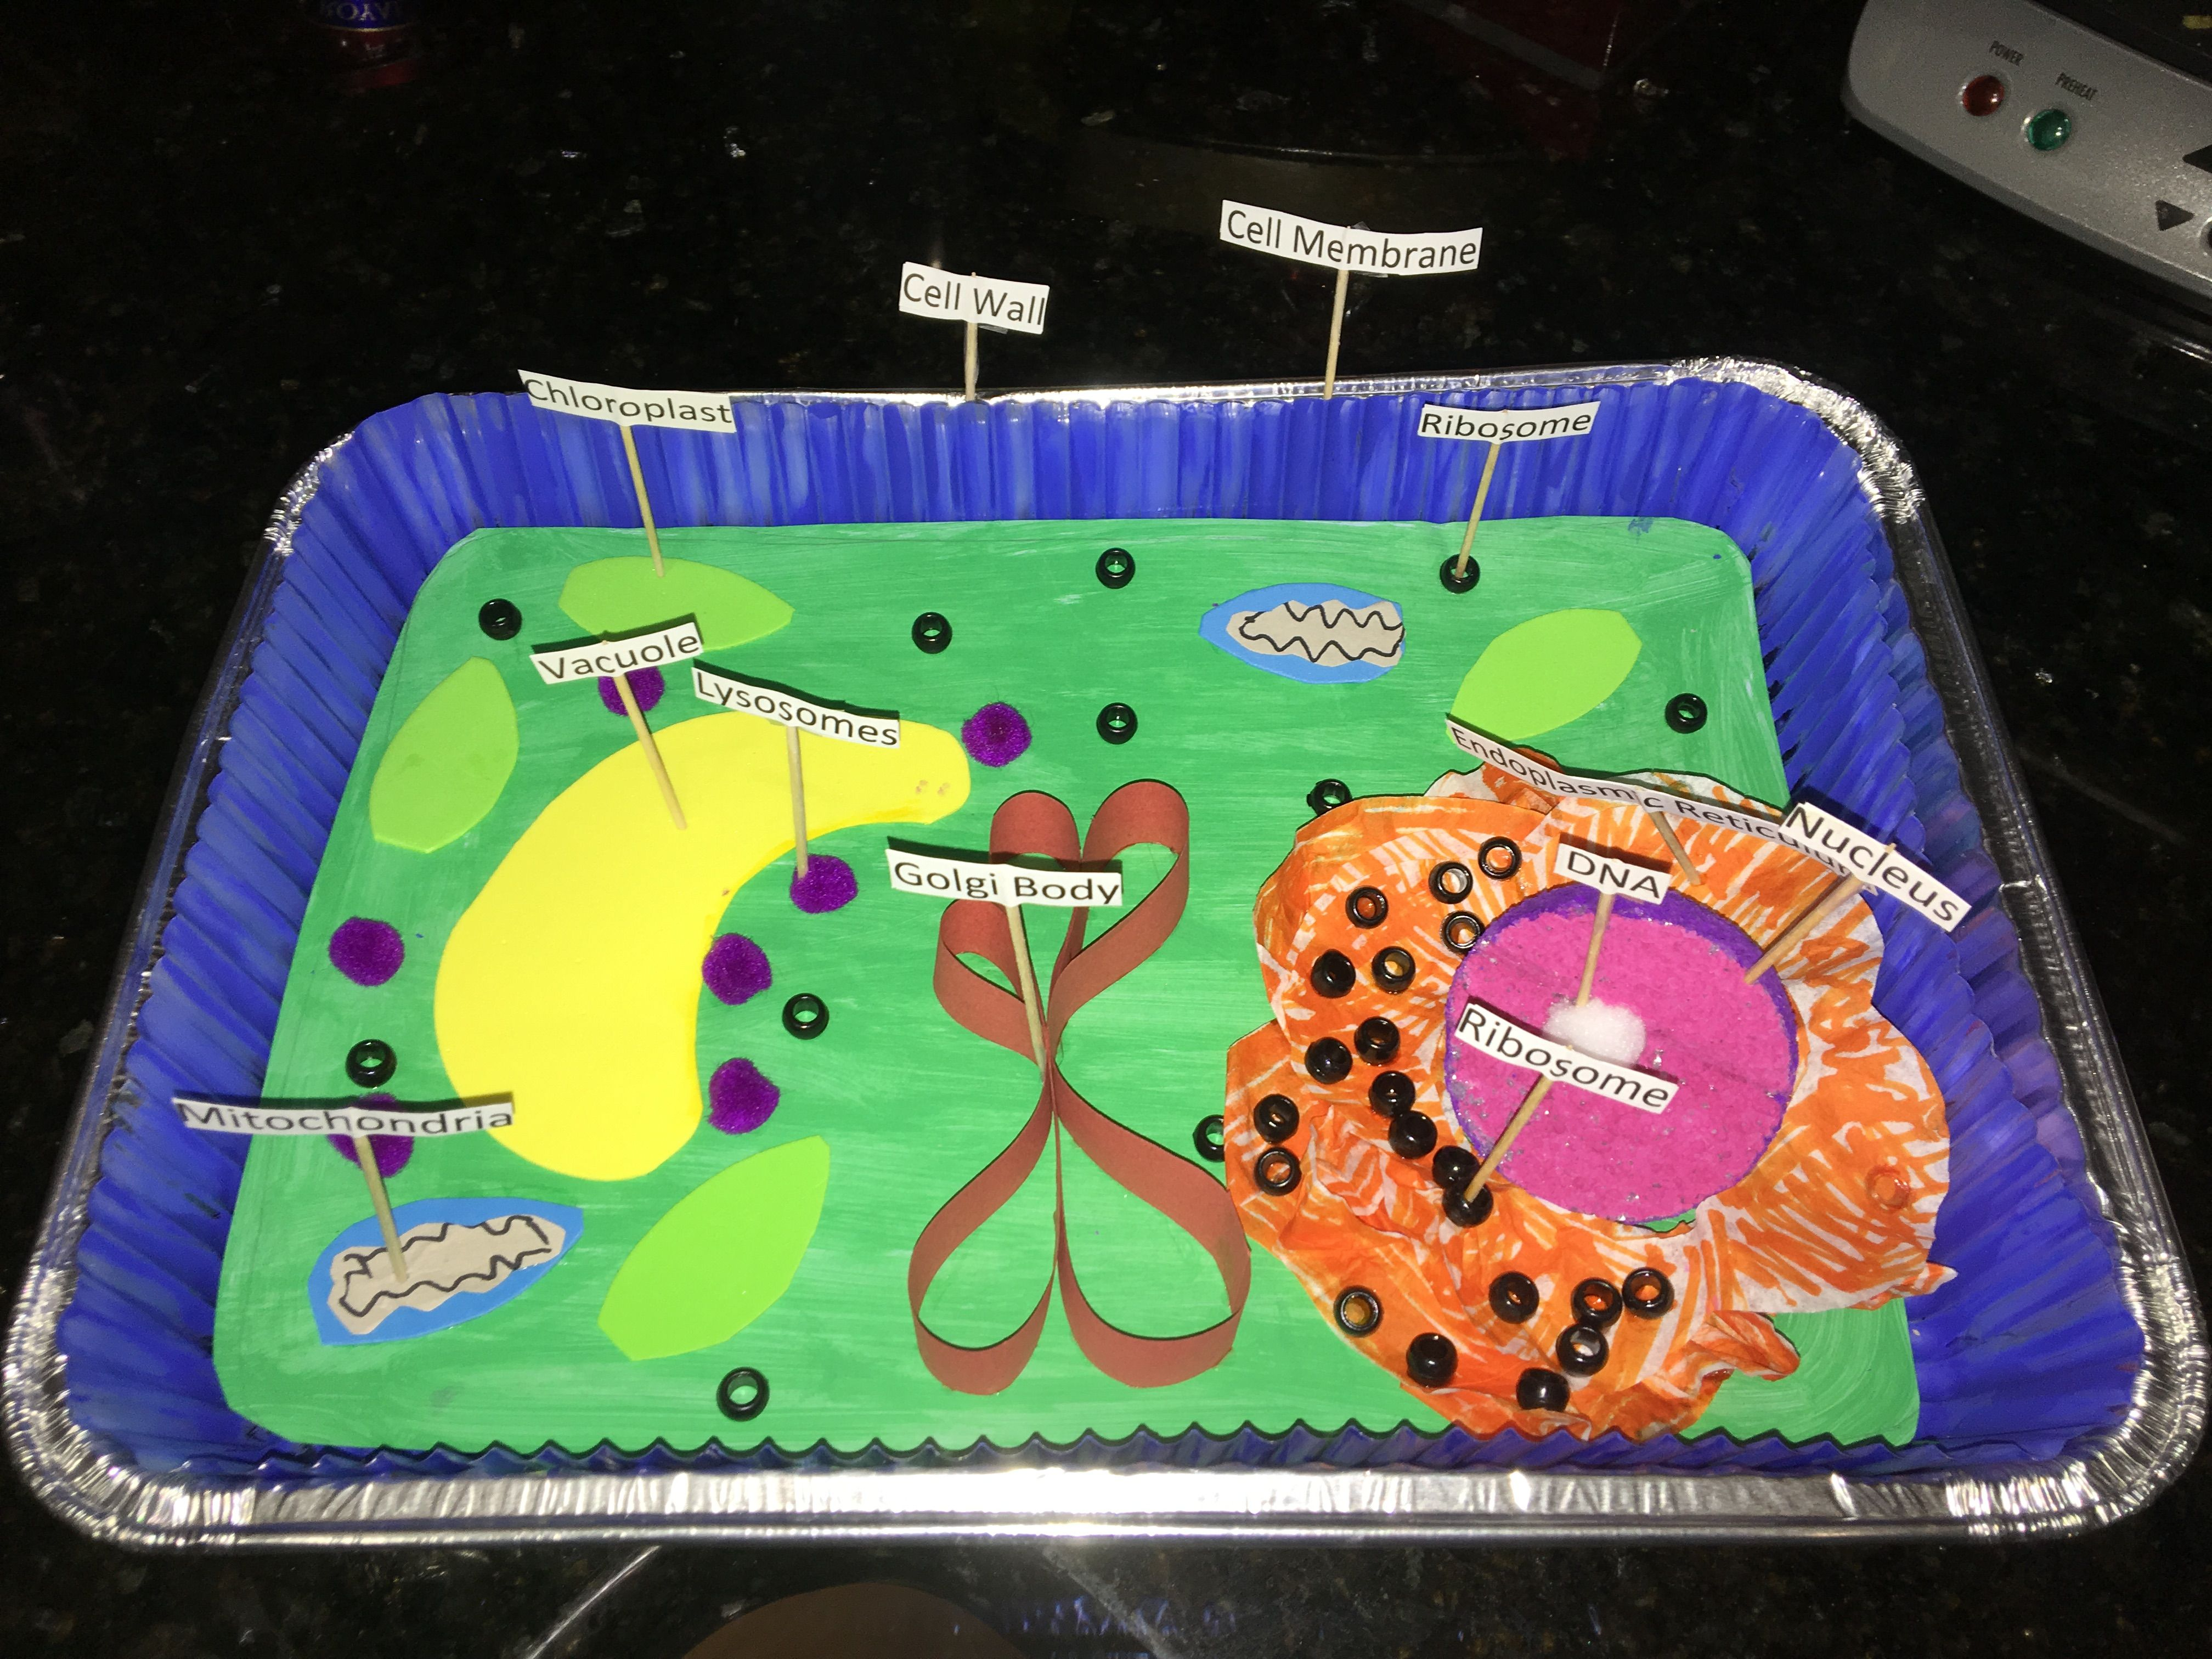 3d plant cell model project materials - 3 D Plant Cell